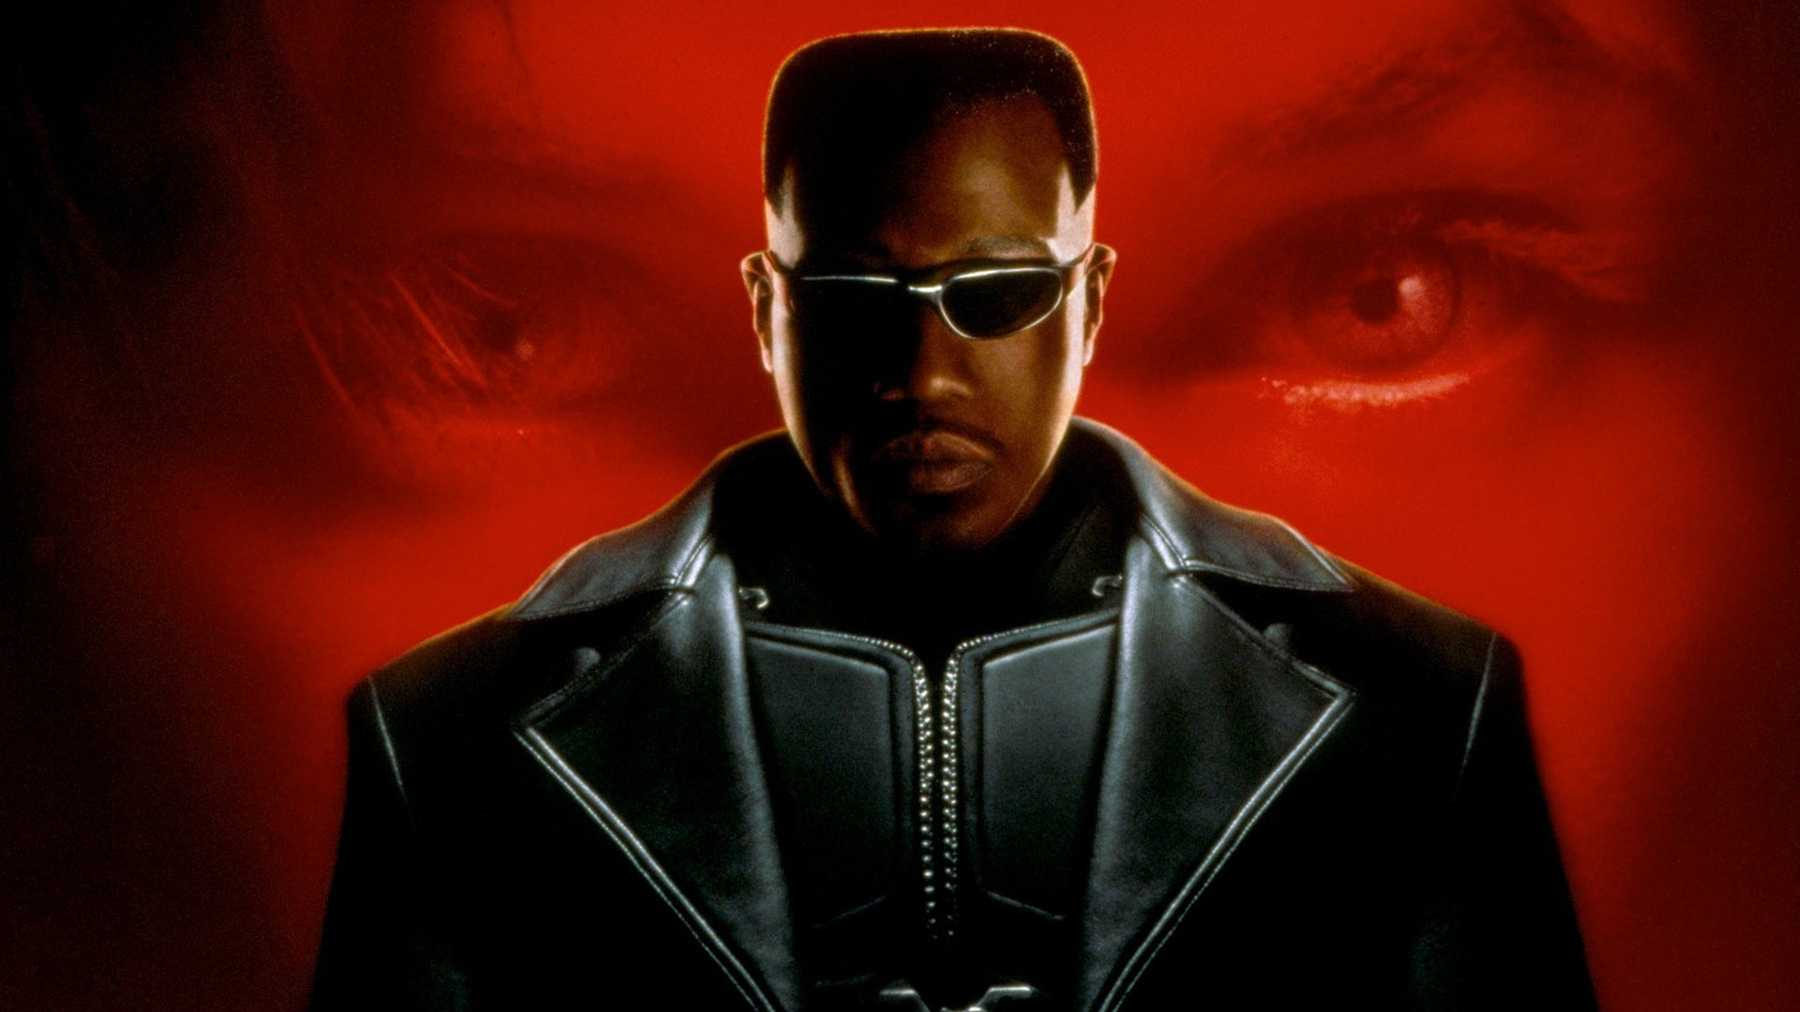 Blade is a Top Movie Killer That We All Love